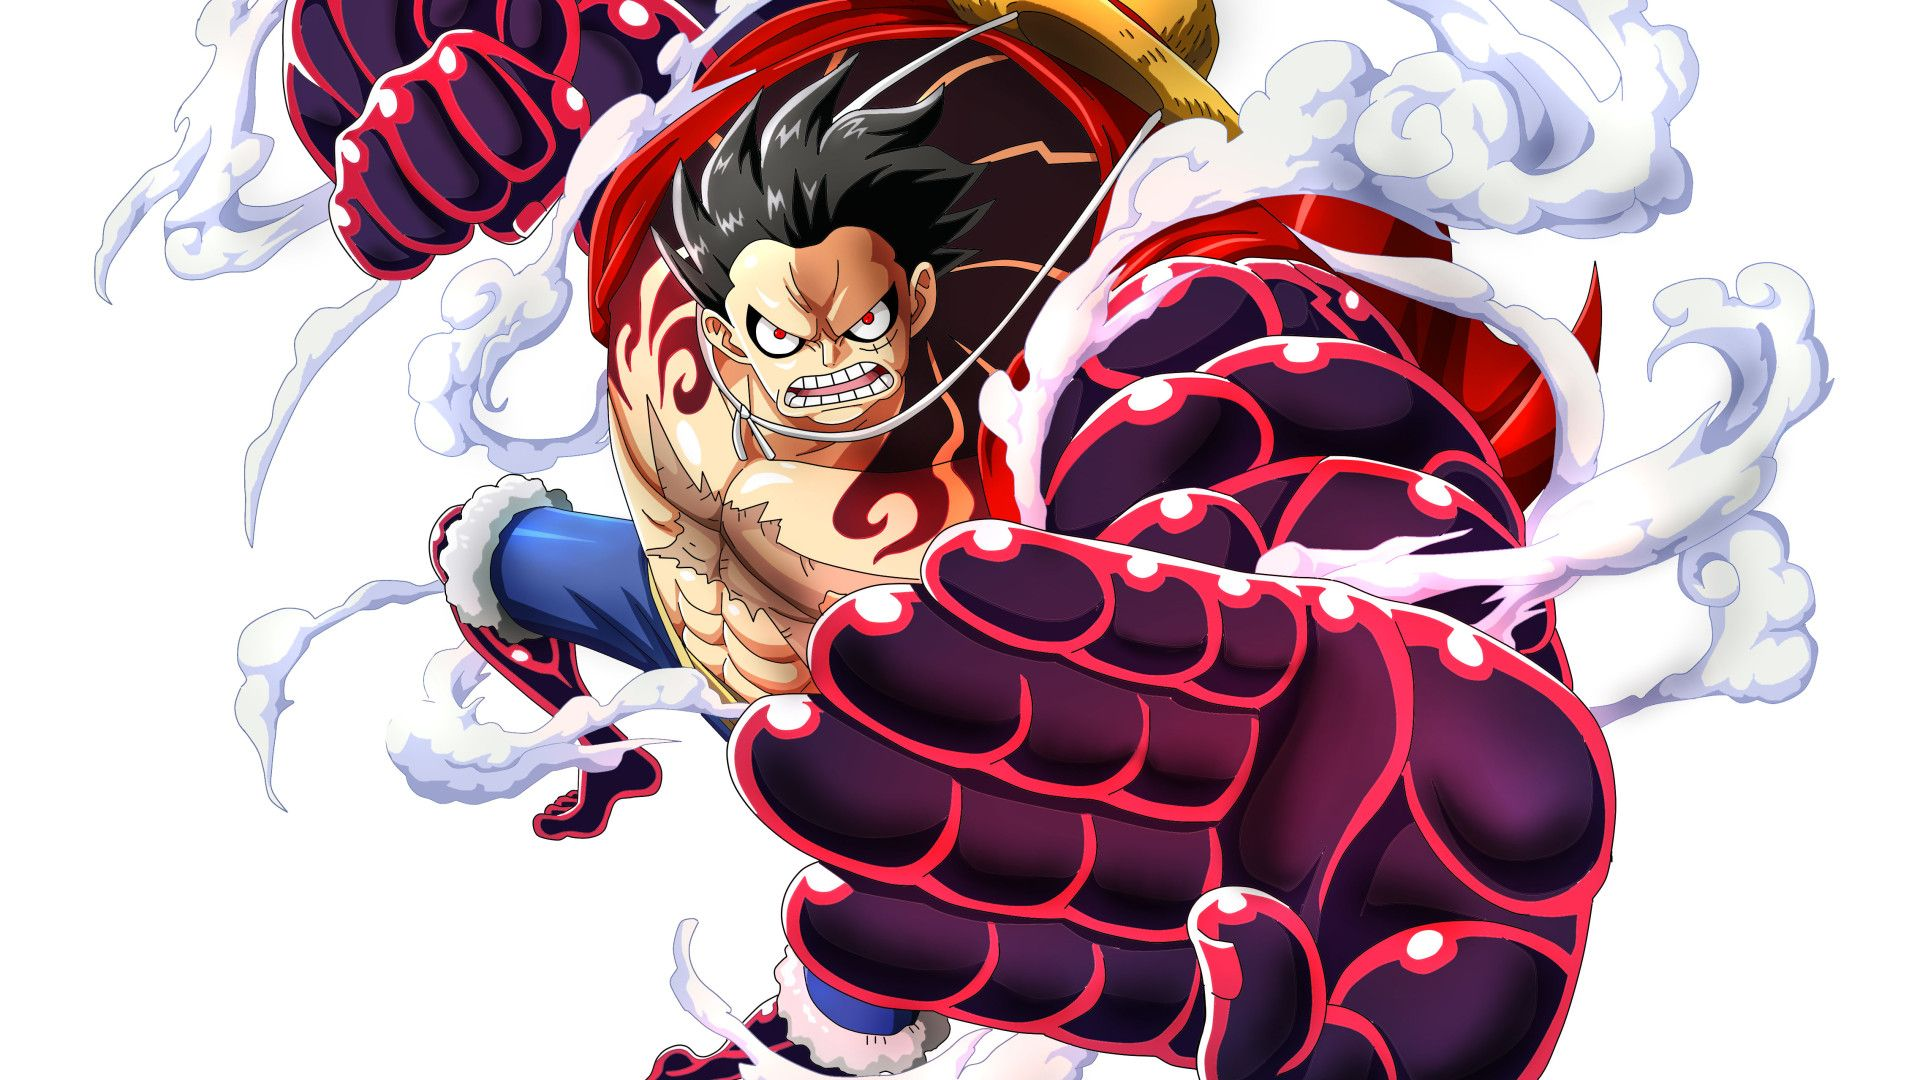 One Piece Luffy Hd Wallpaper 1920x1080 1920x1080 Monkey D Luffy One Piece Laptop Full Hd 1080p Hd One Piece Luf In 2020 One Piece Luffy Luffy Gear 4 One Piece Gear 4